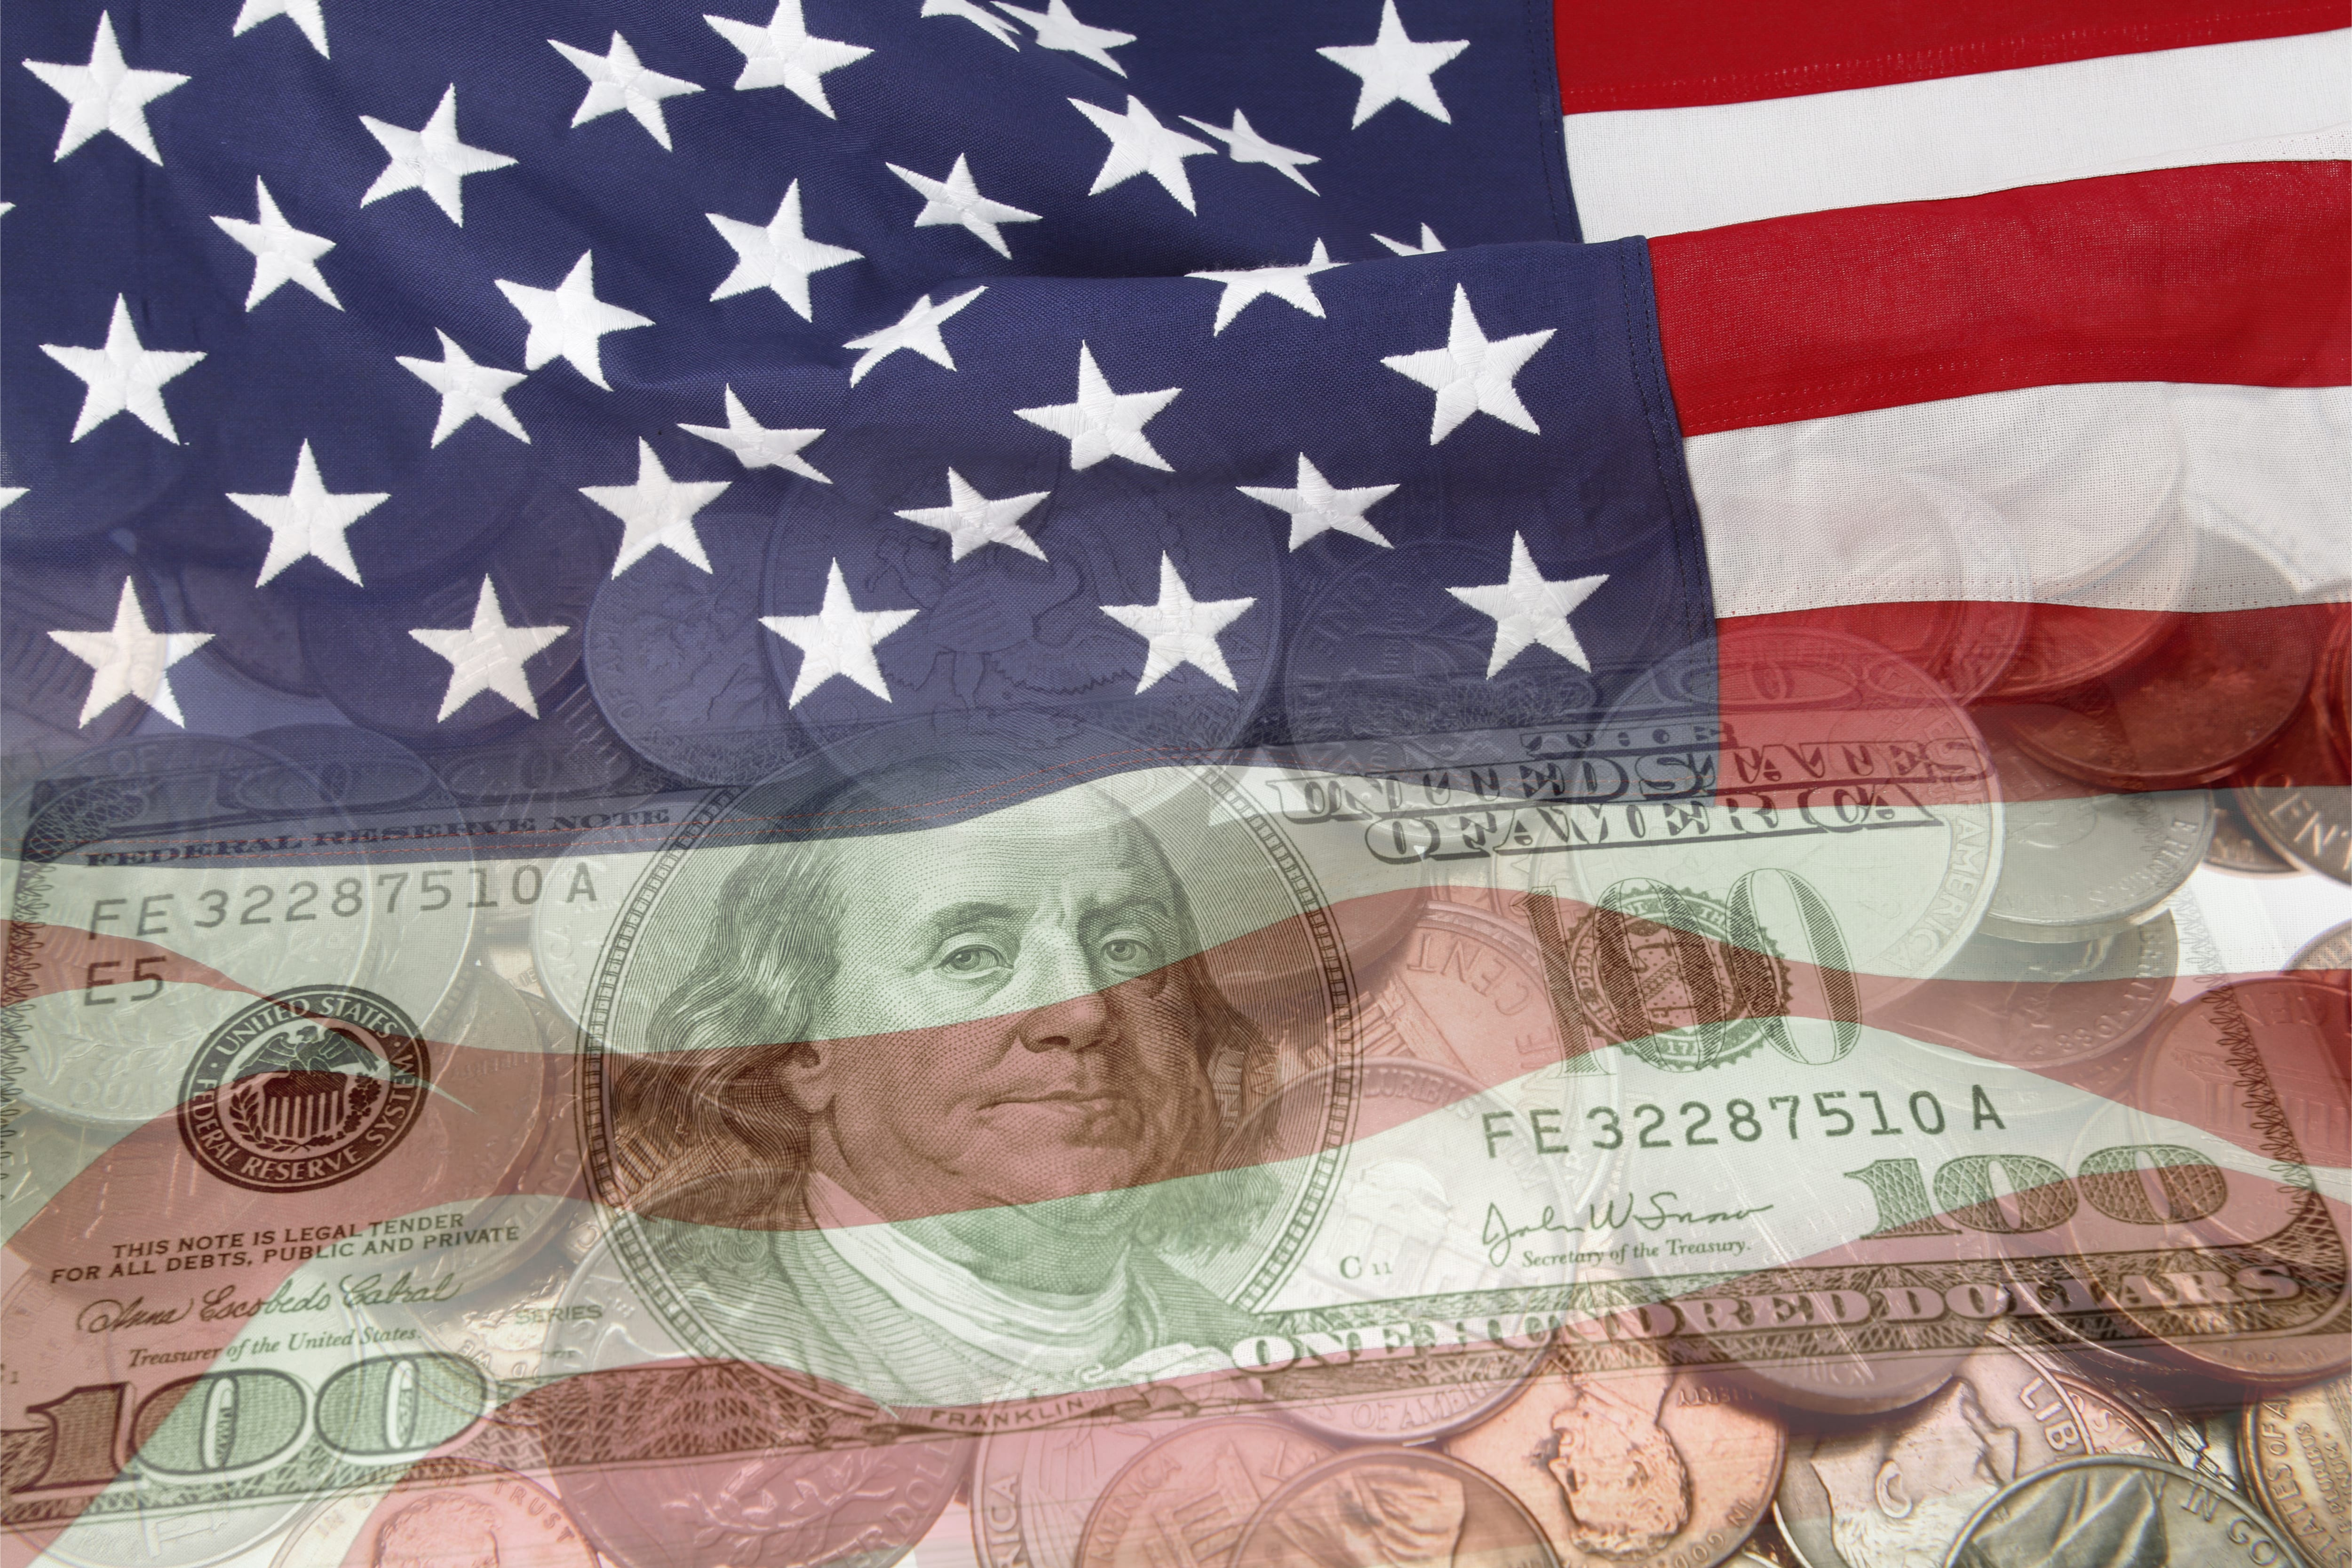 U.S. flag with currency